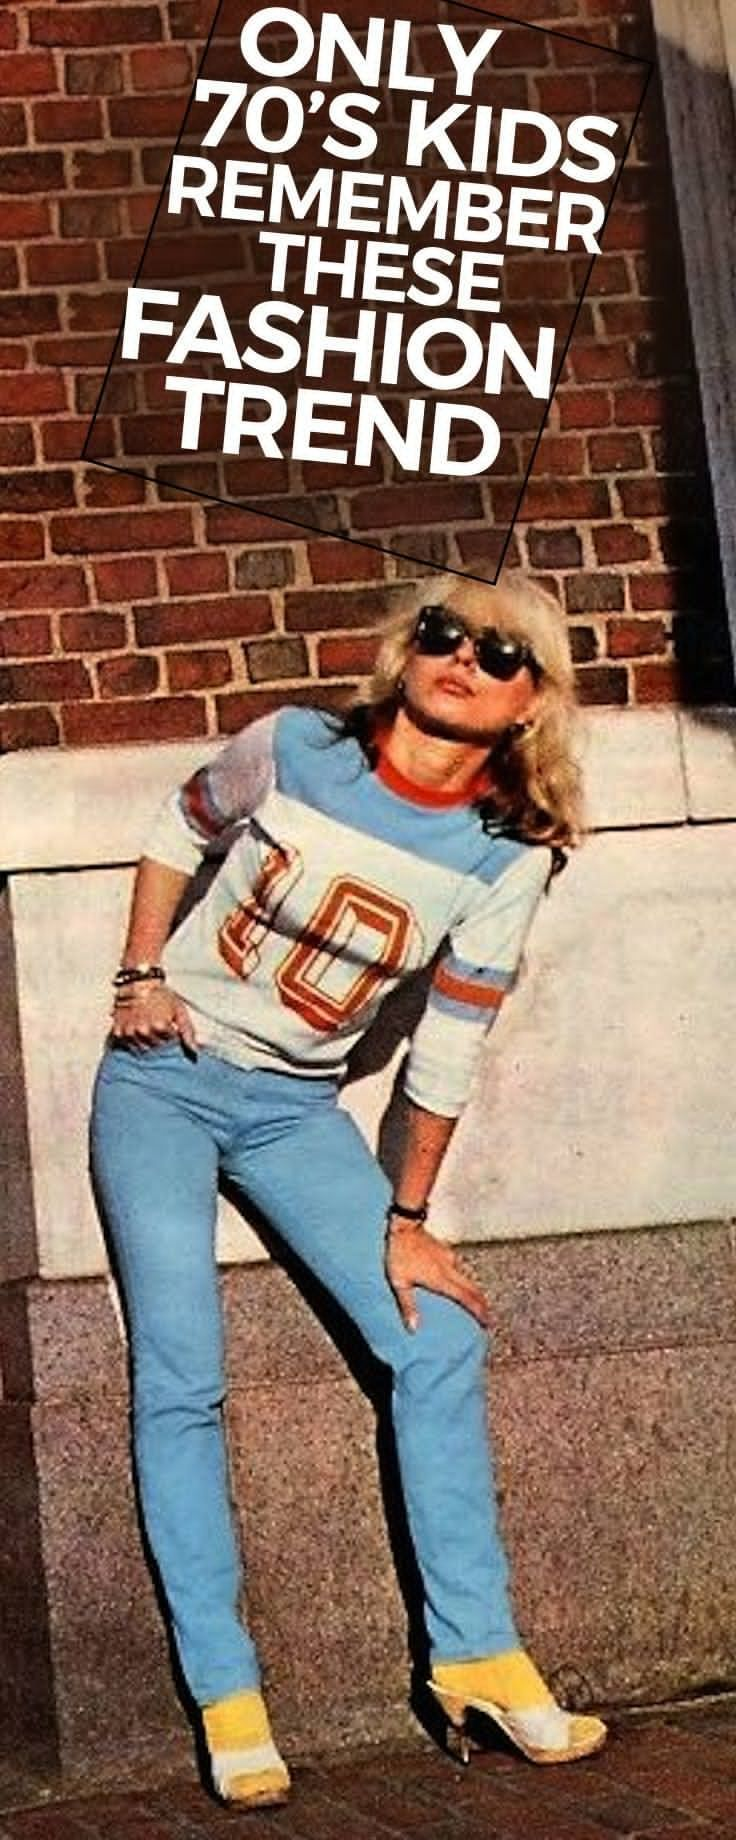 Here's a rundown of the top fashion trends of the 70s. http://feedproxy.google.com/fashionshoes1